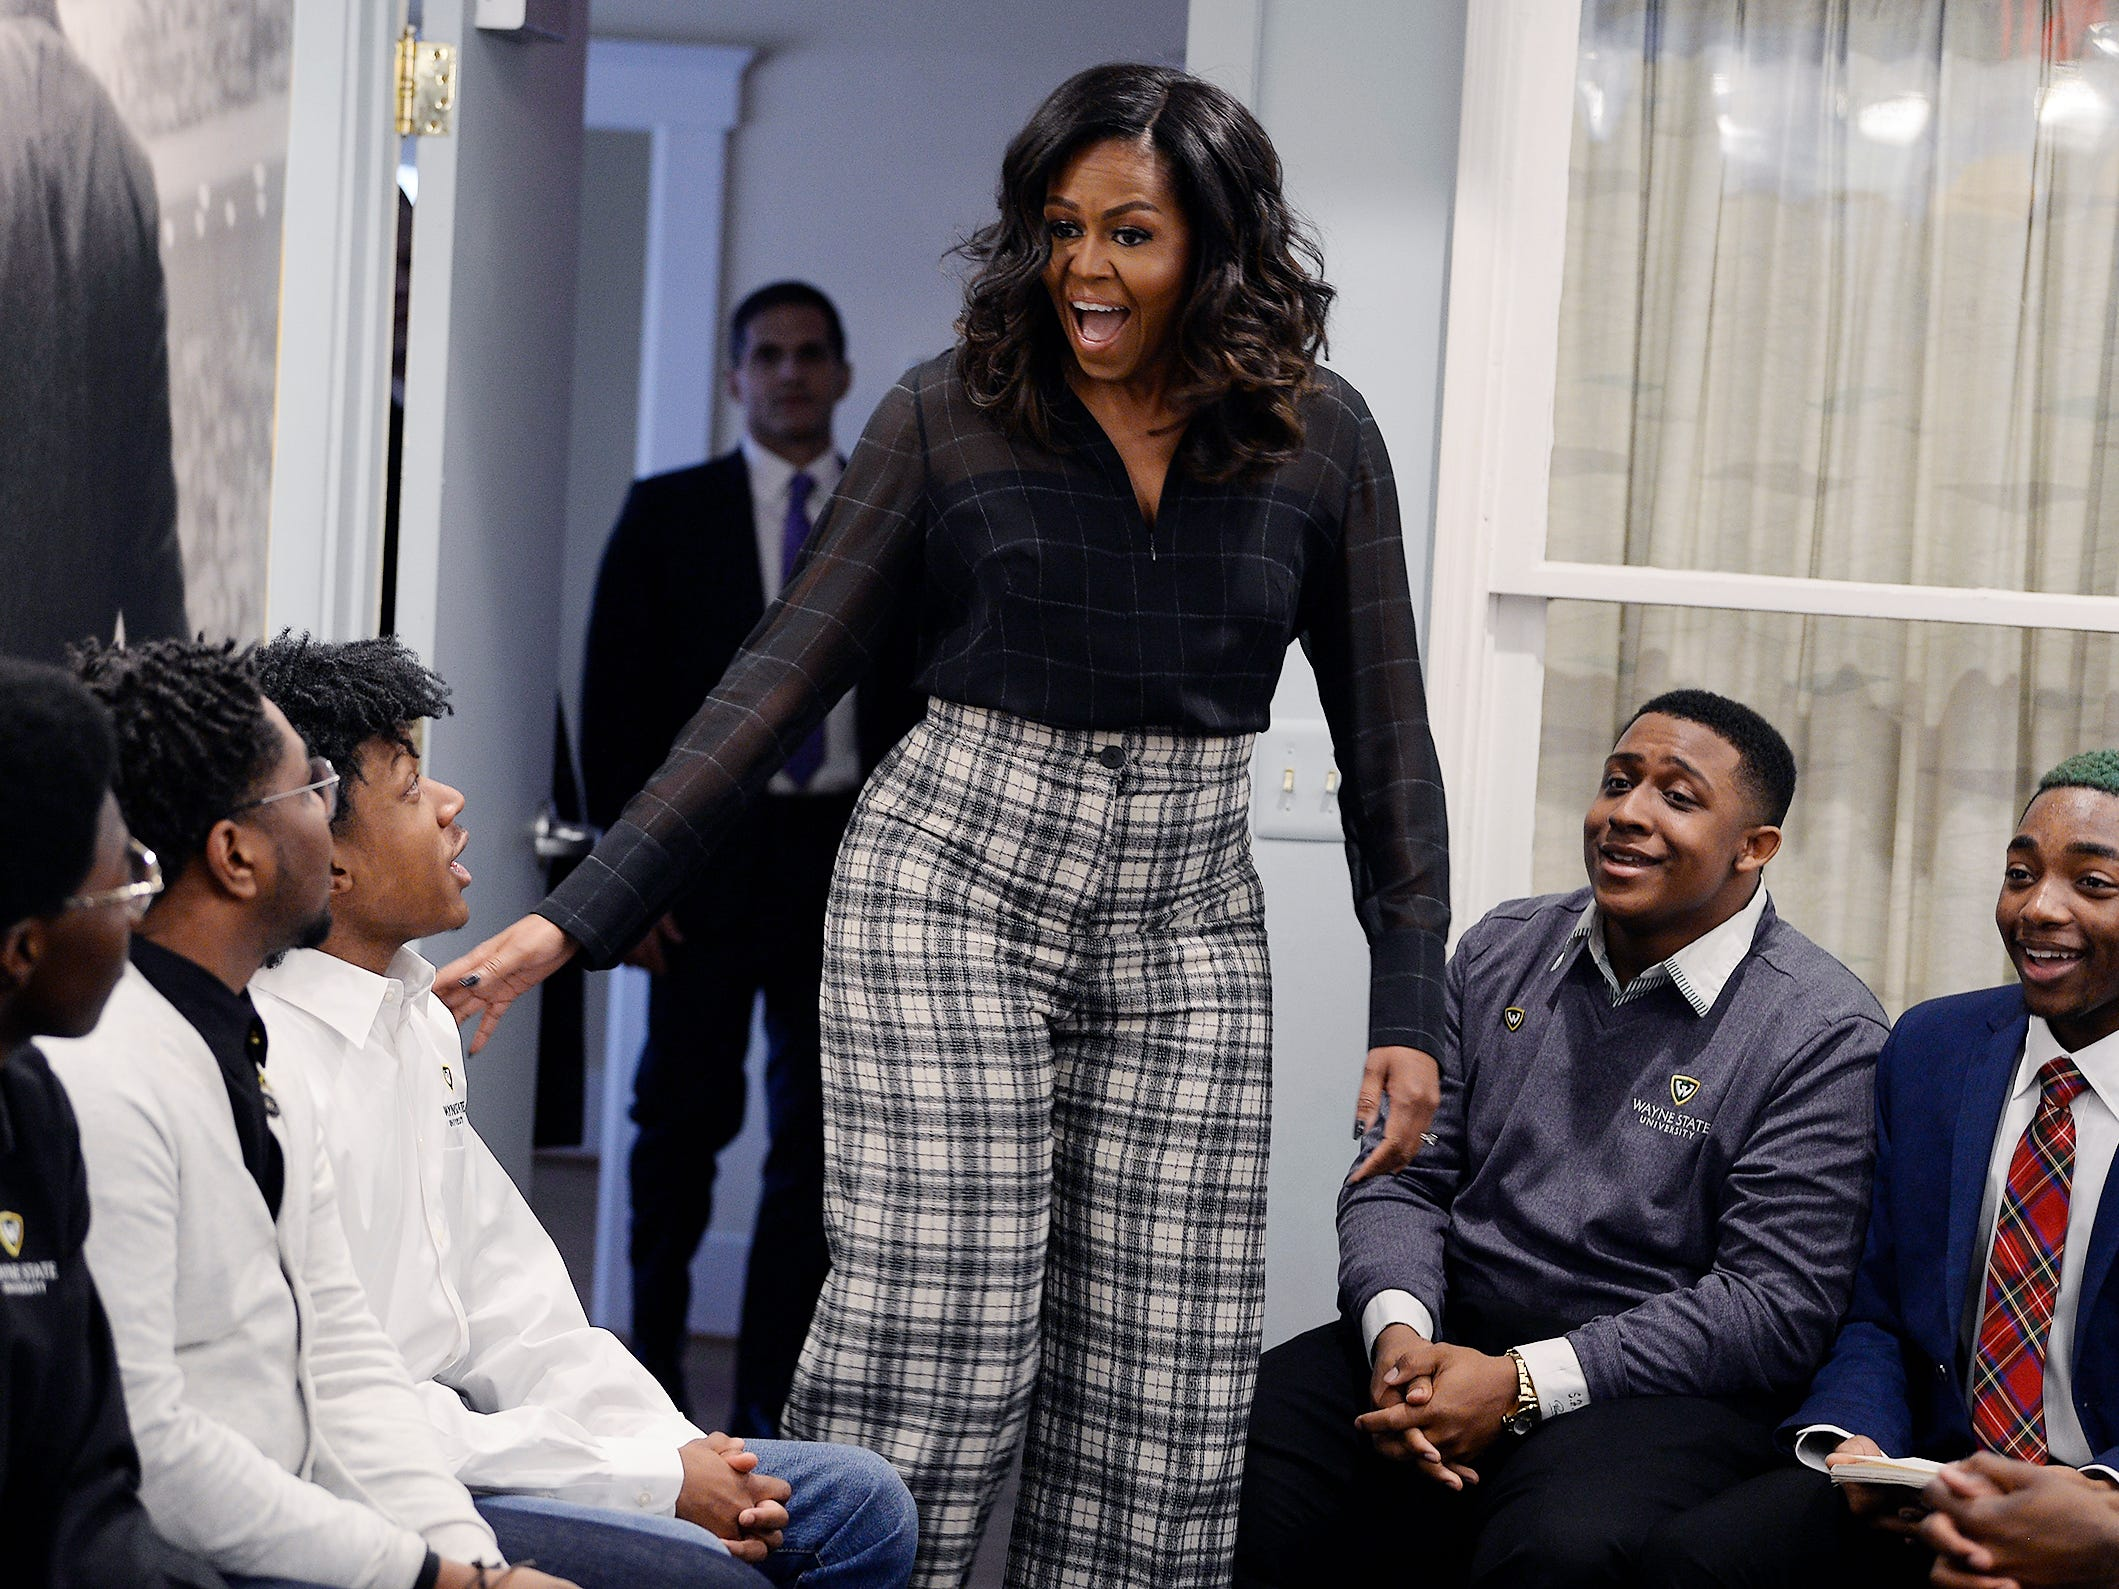 Michelle Obama makes a surprise entrance on a round table discussion with a group of men from Wayne State University during her visit at the Motown Museum., December,11, 2018, Detroit, Michigan.